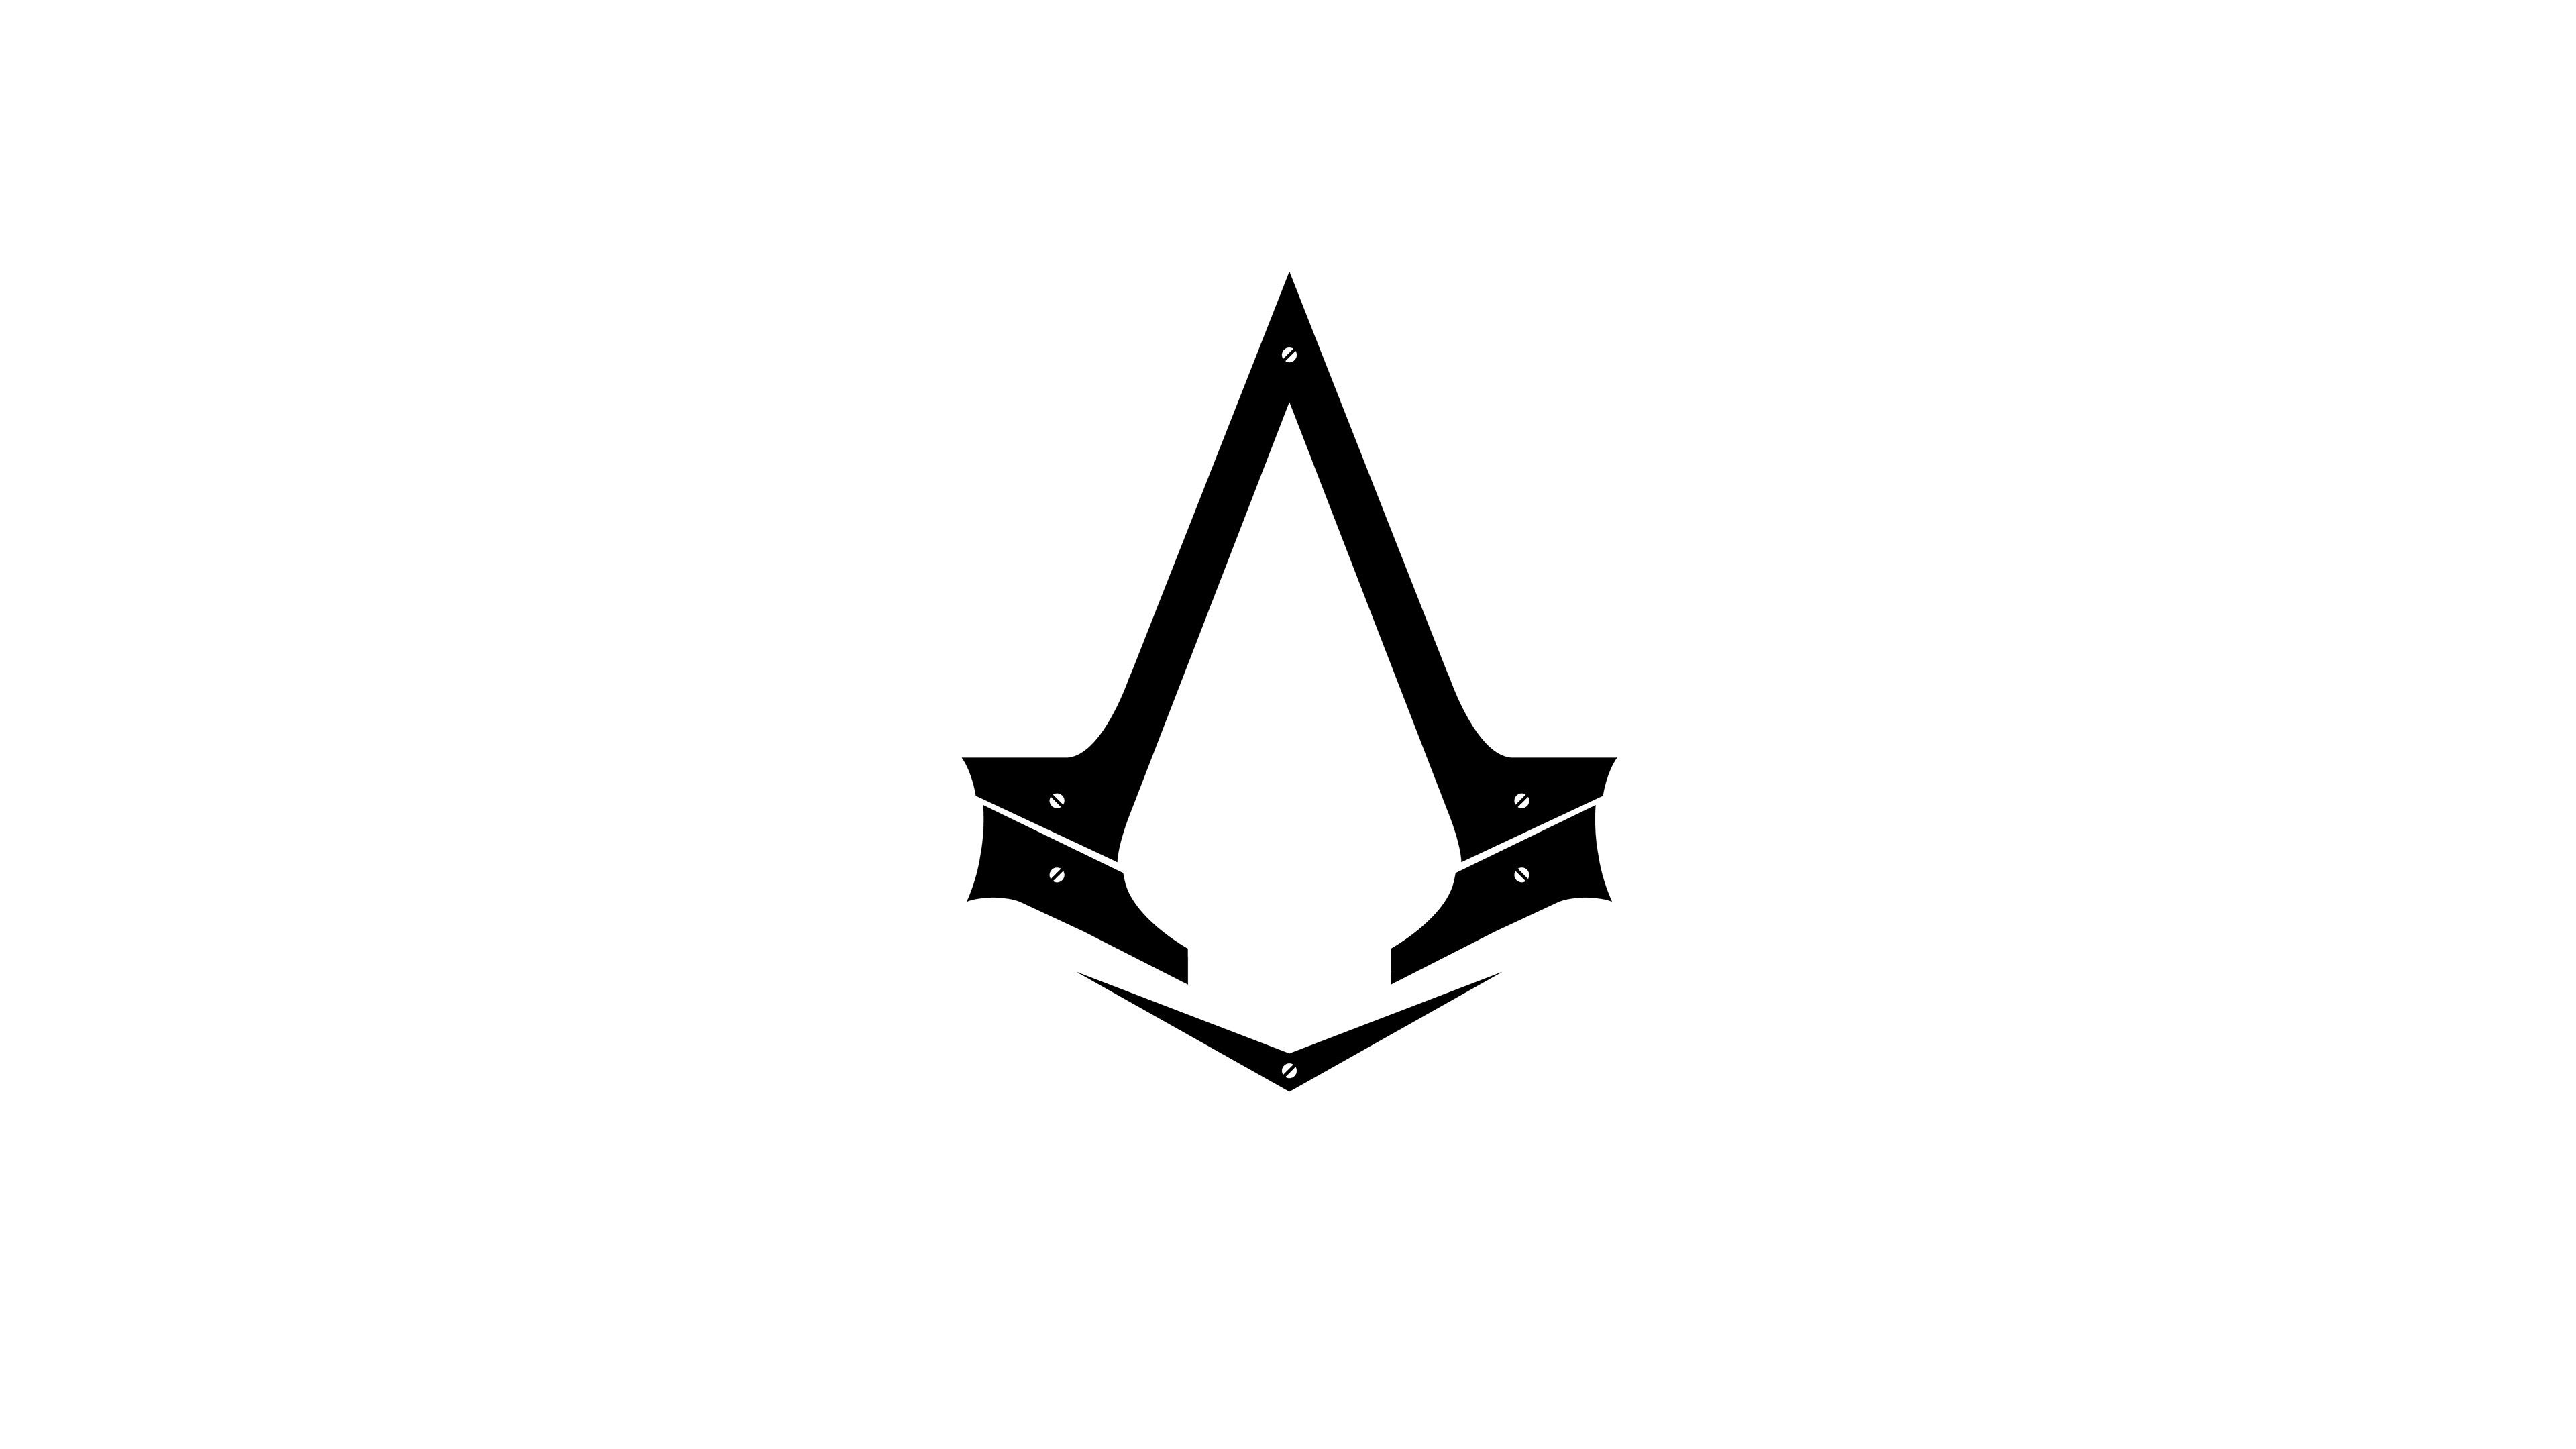 Download assassins creed syndicate logo cool wallpapers hd.